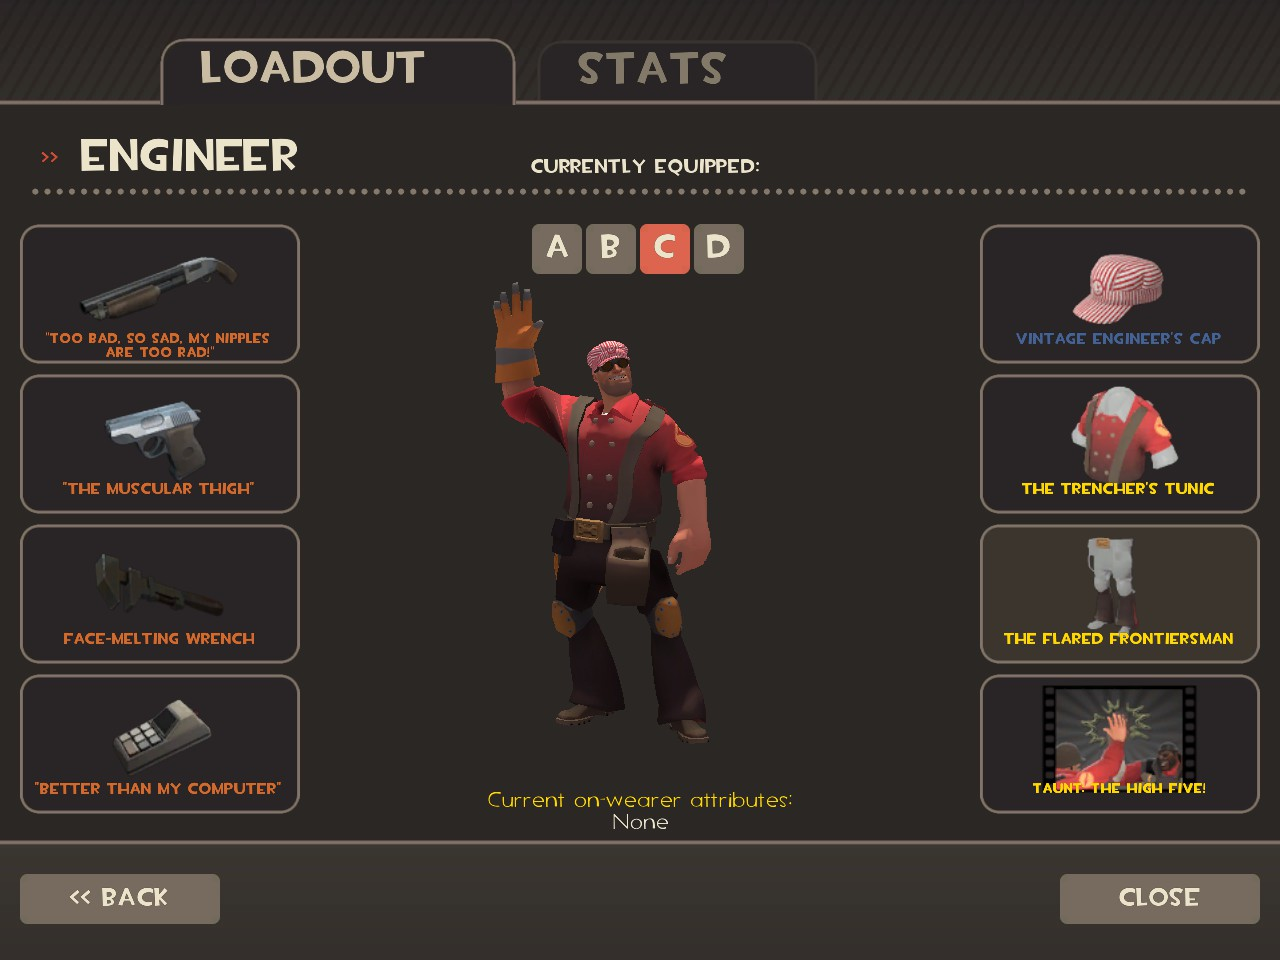 Tf2 soldier cosmetics quotes - Tf2 Soldier Cosmetics Quotes 19